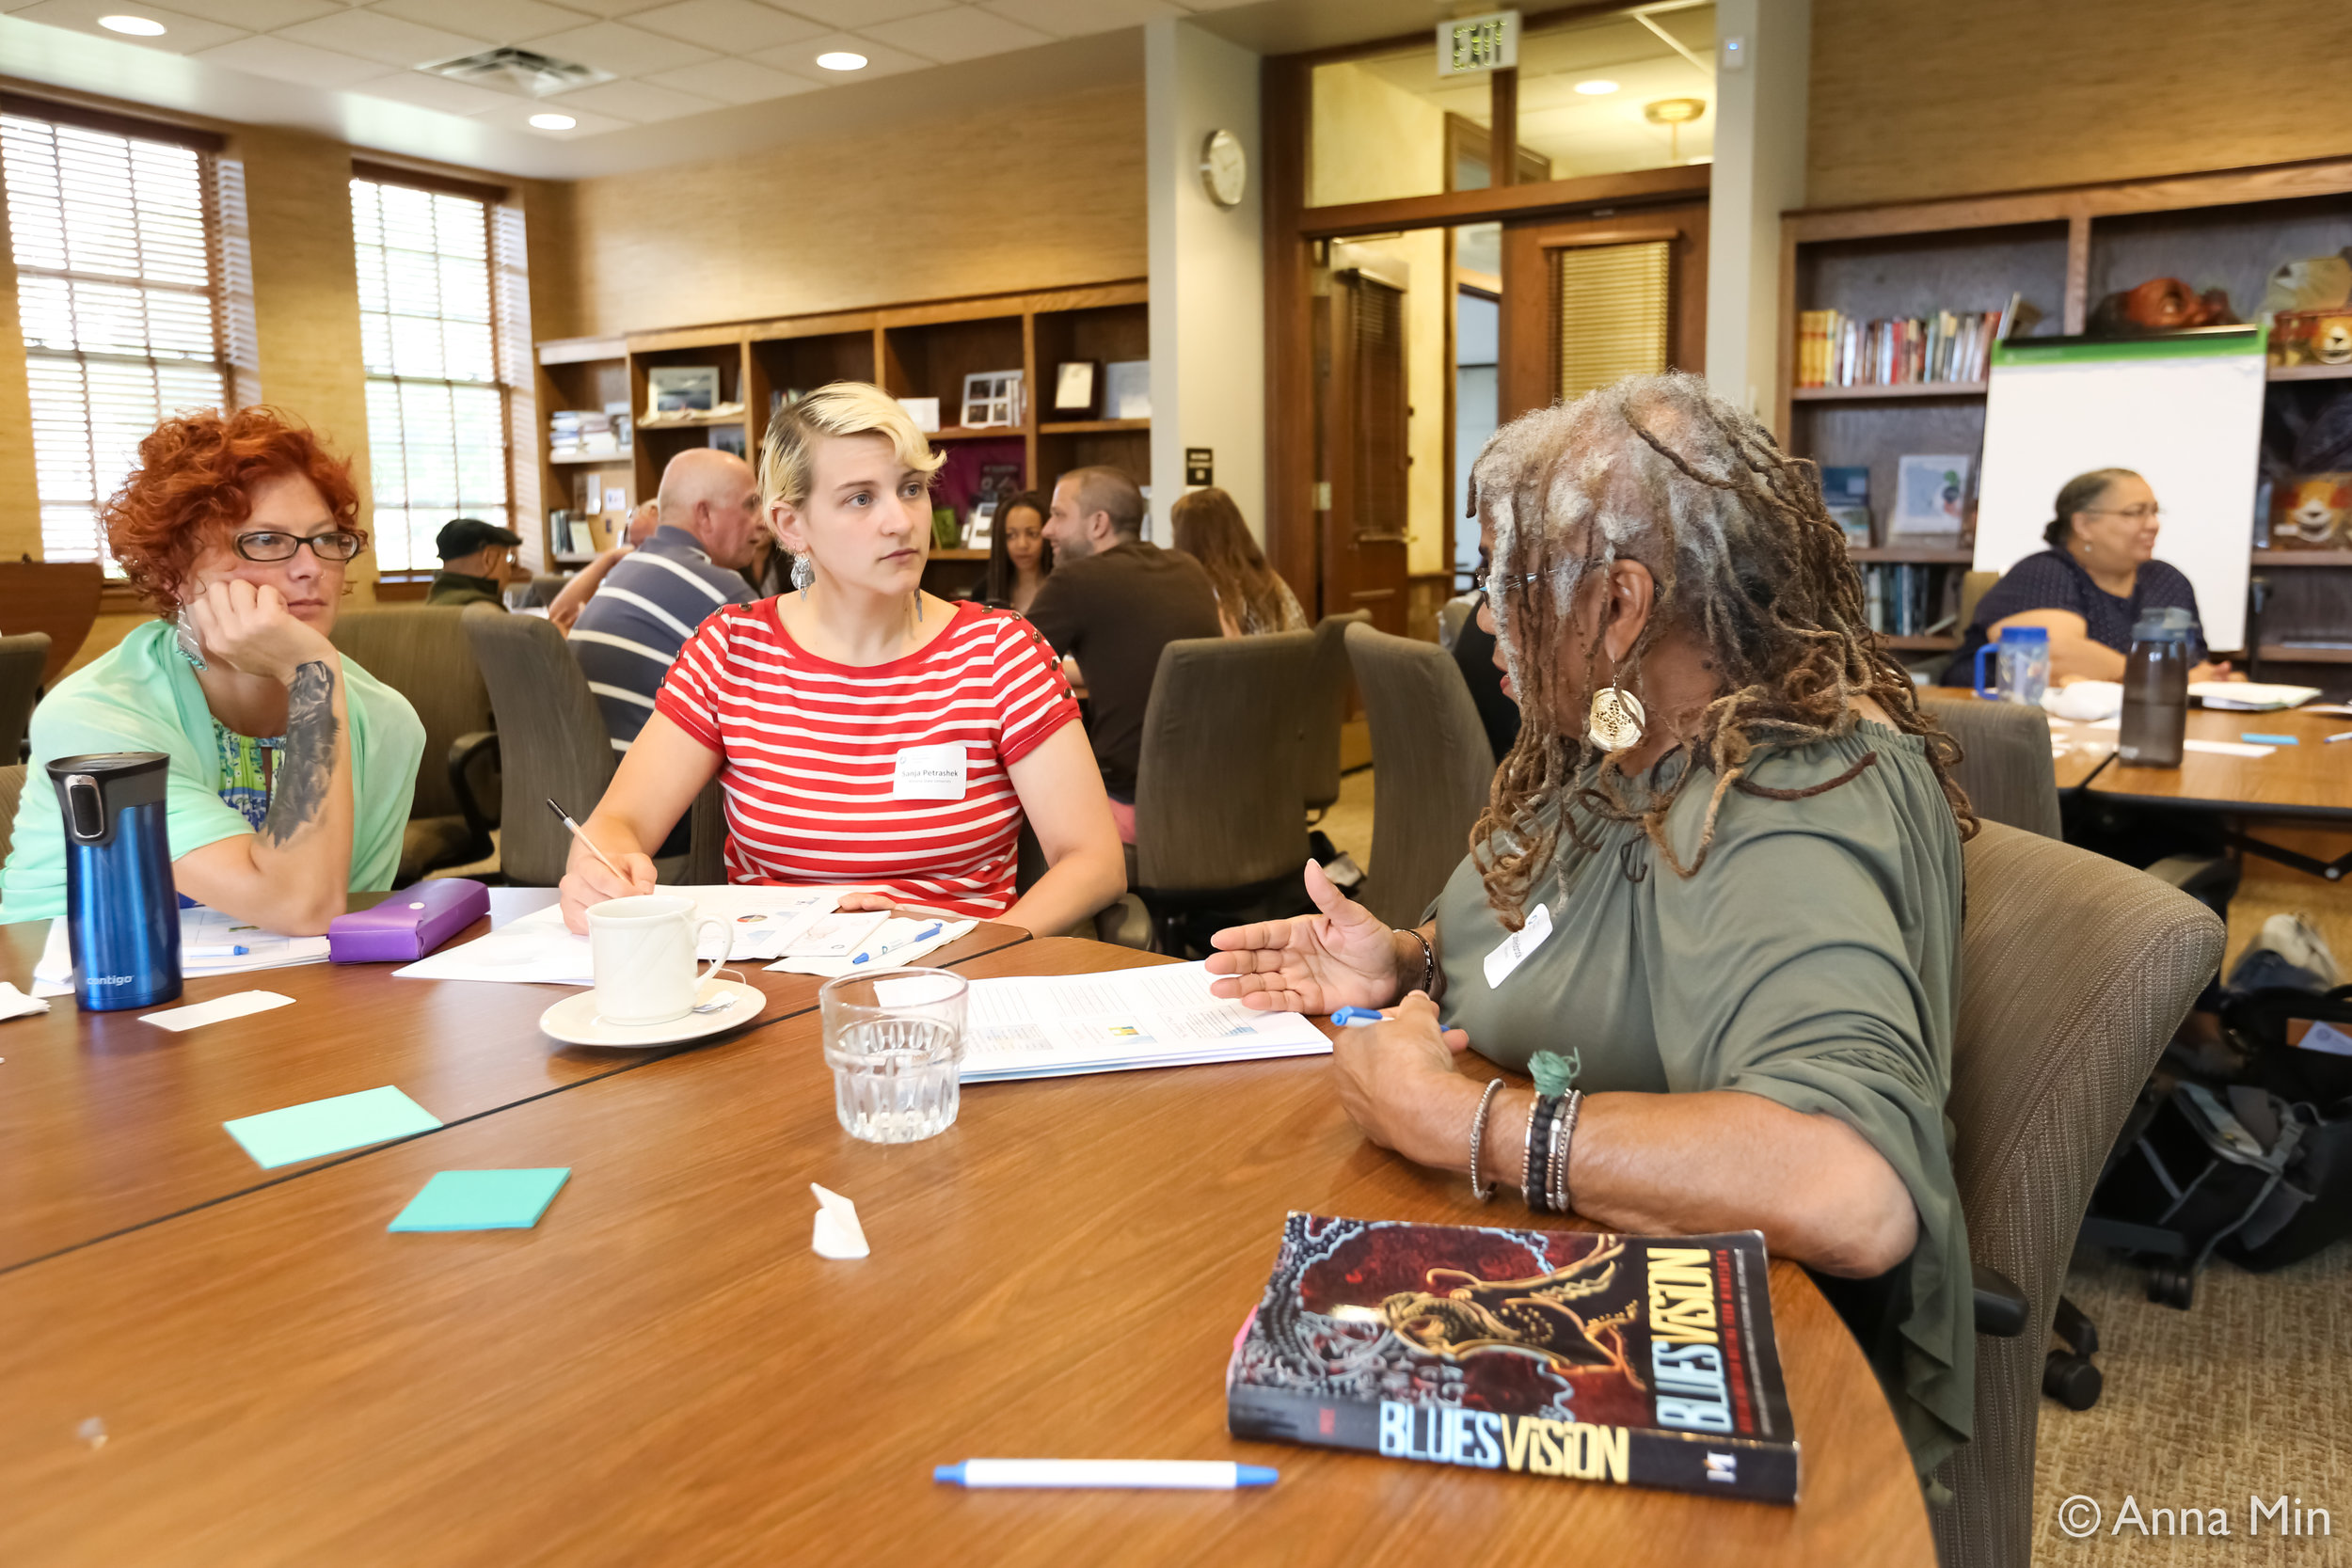 Listen. - What does it sound like, look like and feel like to be accurately represented in the media? How would more accurate racial narratives influence how you experience public life and decision making?We conducted 17 listening sessions with various stakeholder groups around Minnesota to learn the answers to these and other questions. Read the key takeaways and recommendations from those conversations.